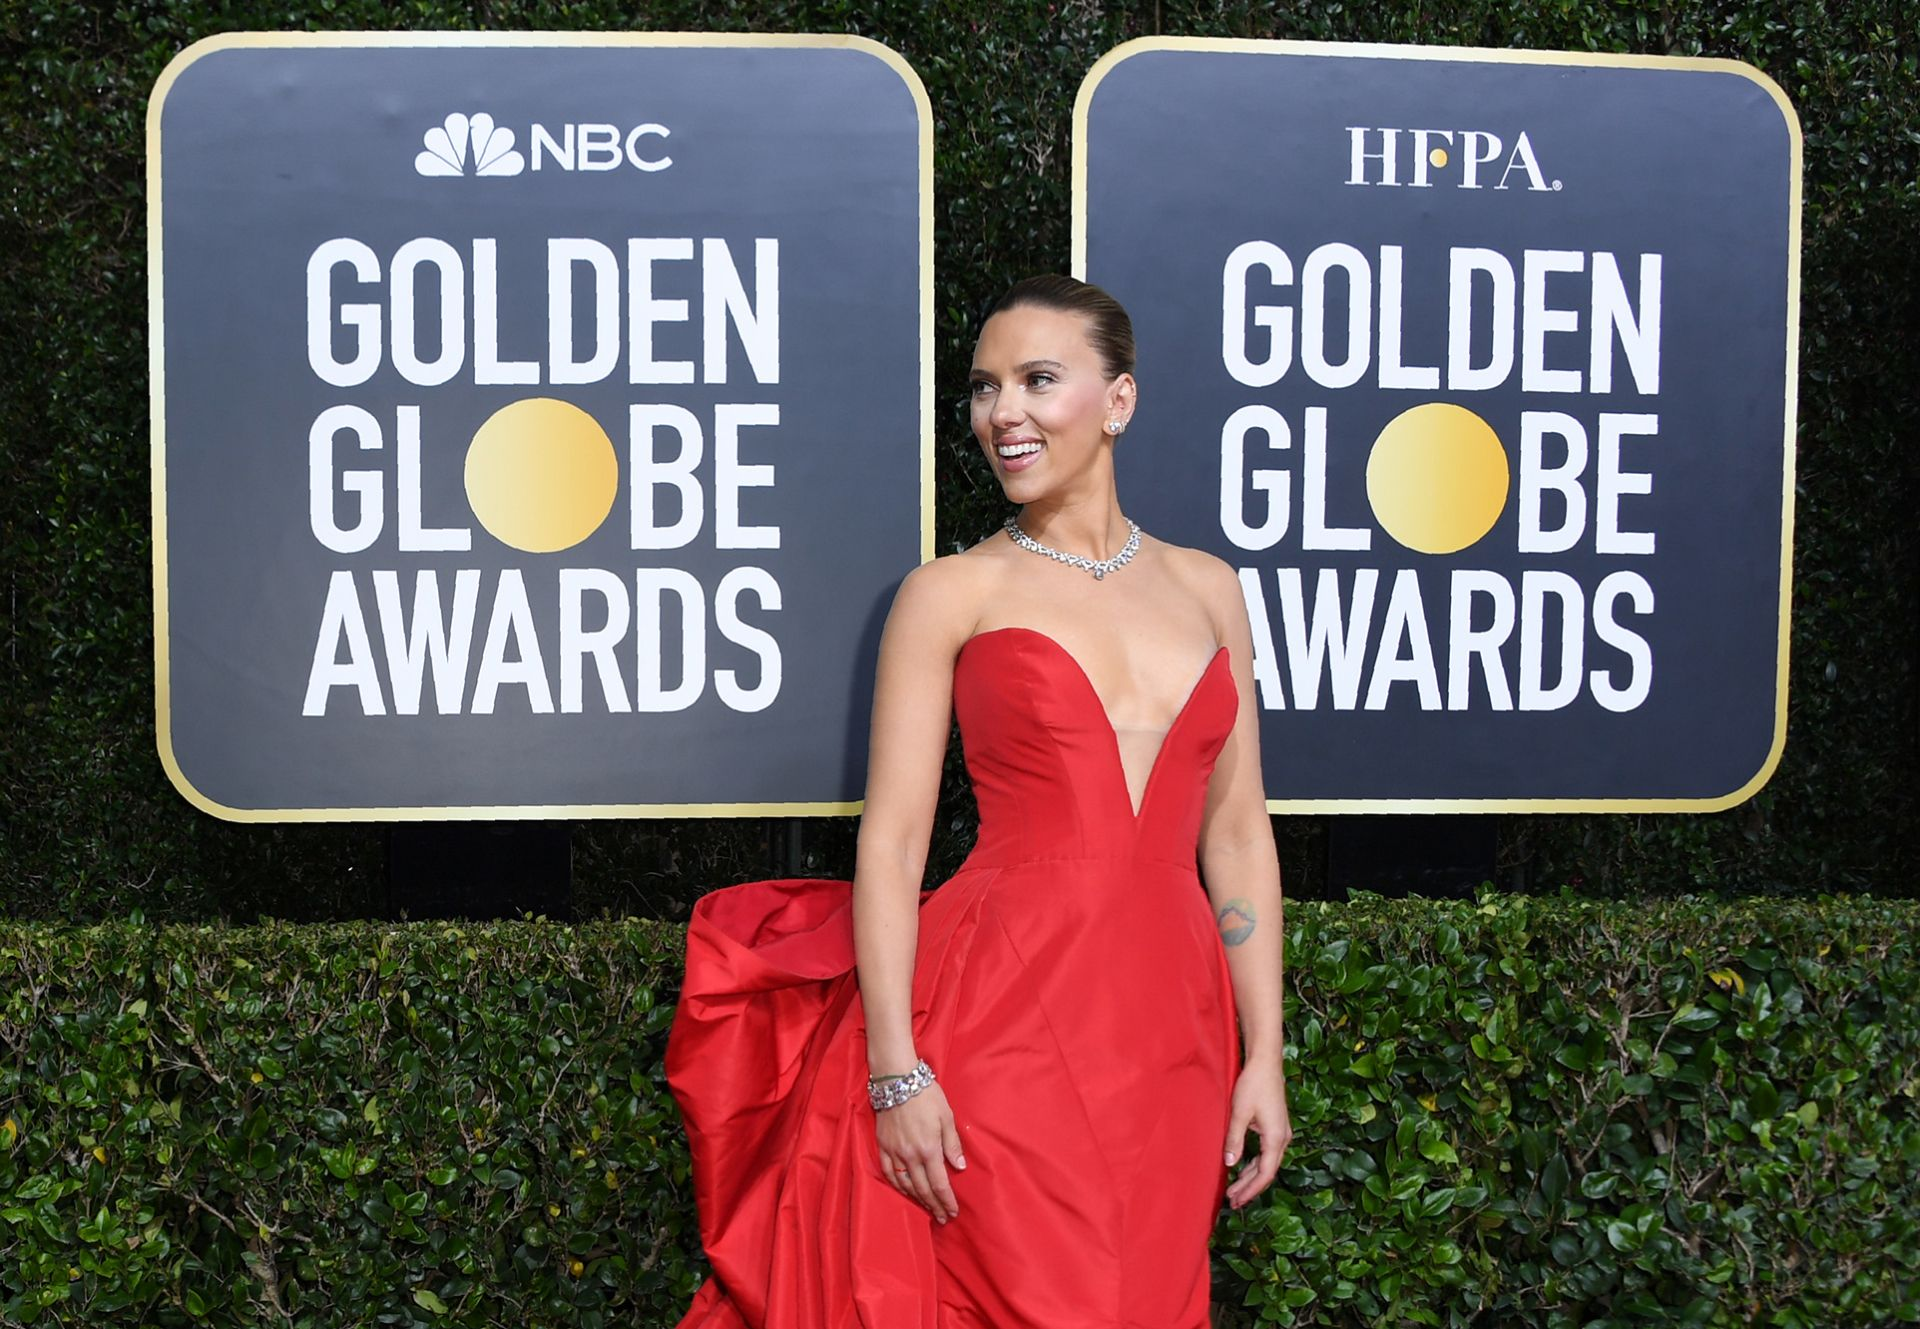 US actress Scarlett Johansson arrives for the 77th annual Golden Globe Awards on January 5, 2020, at The Beverly Hilton hotel in Beverly Hills, California. (Photo by VALERIE MACON / AFP)